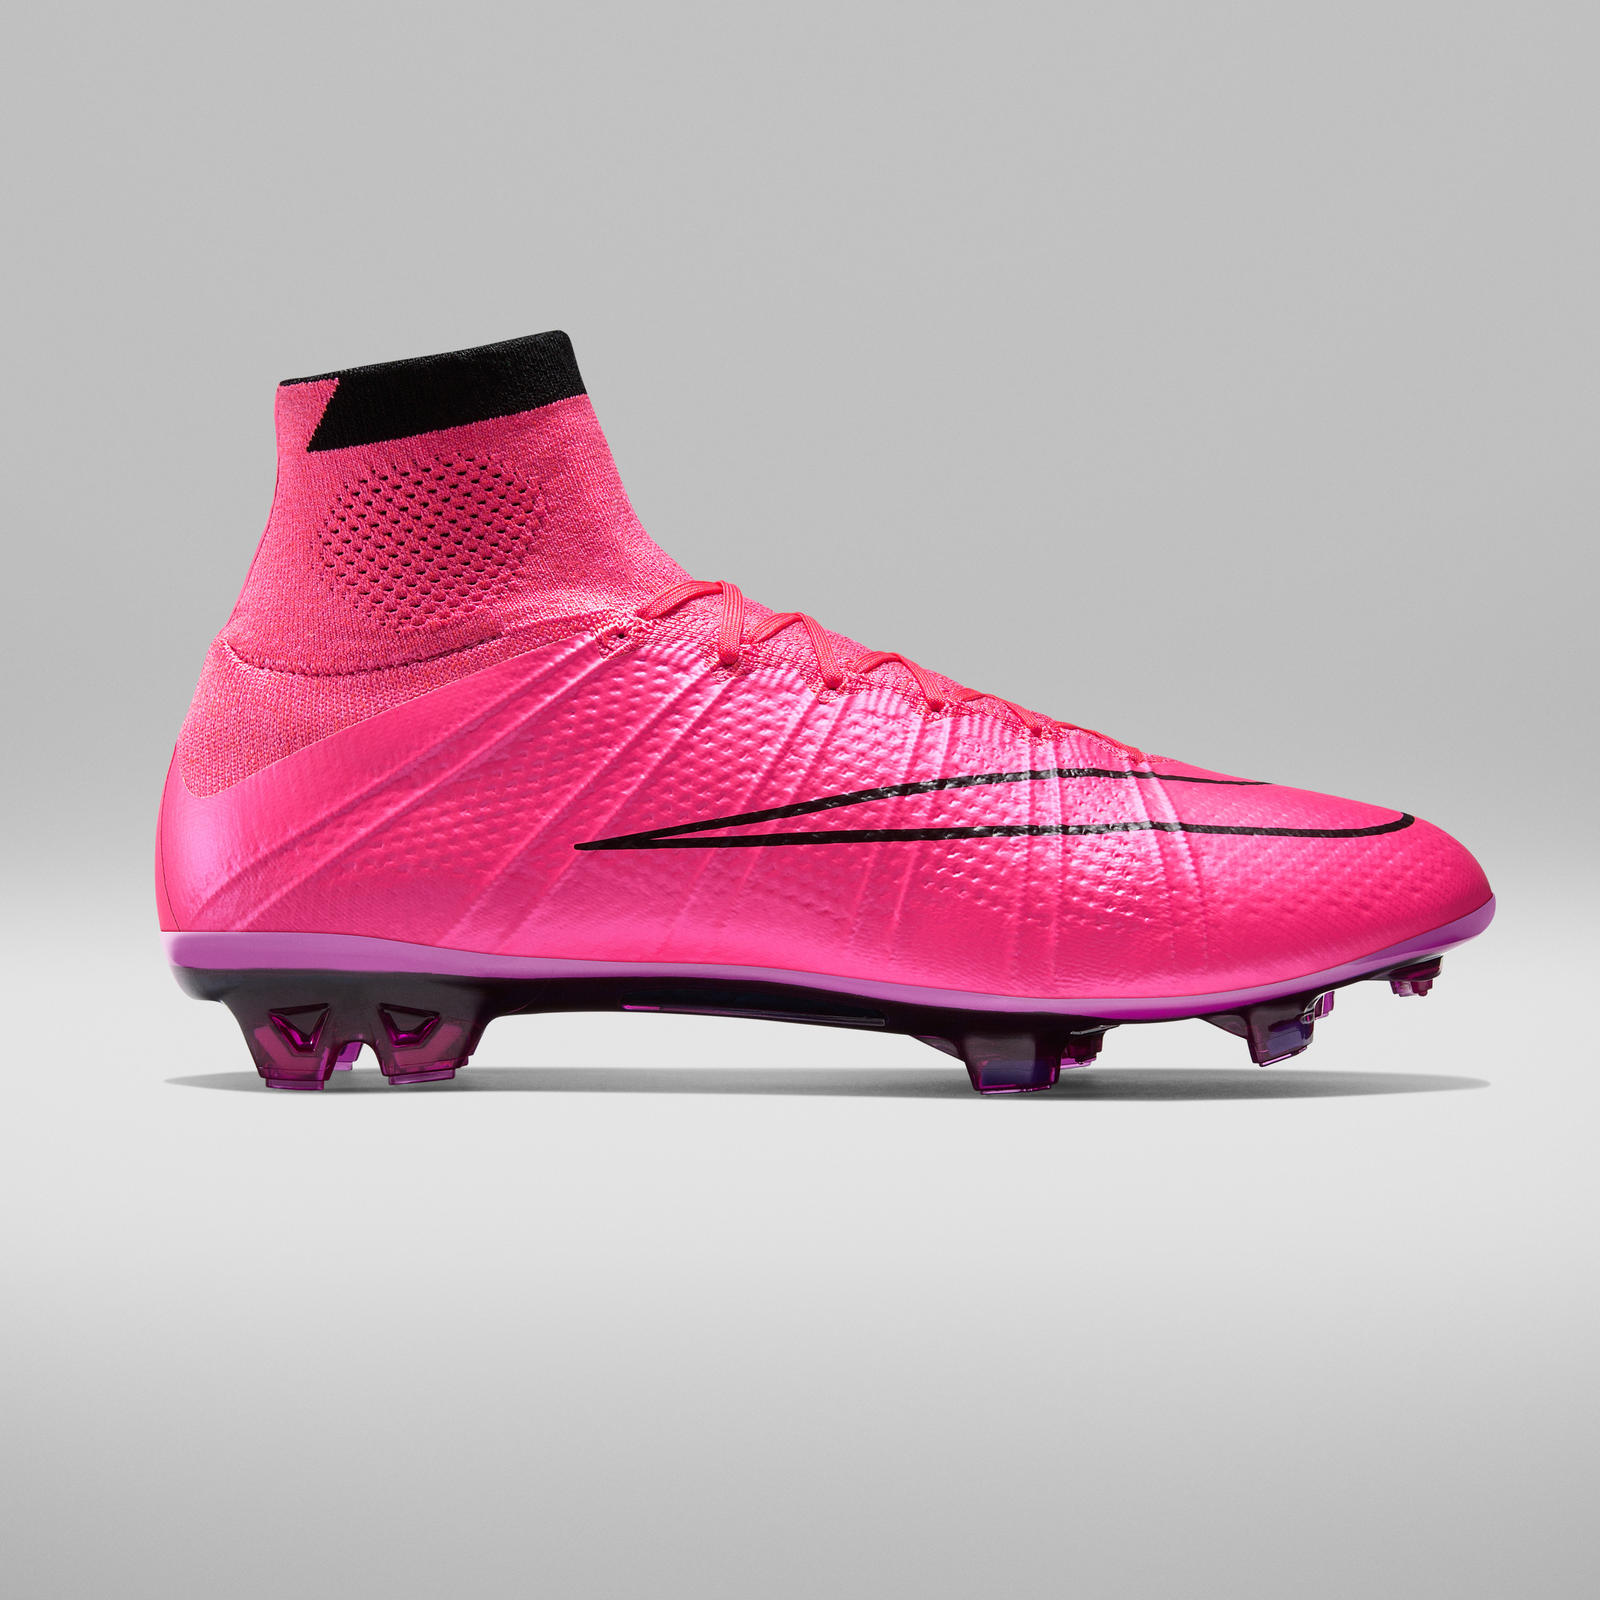 FA15_FB_FG_MercurialSuperfly_Lateral_Pink